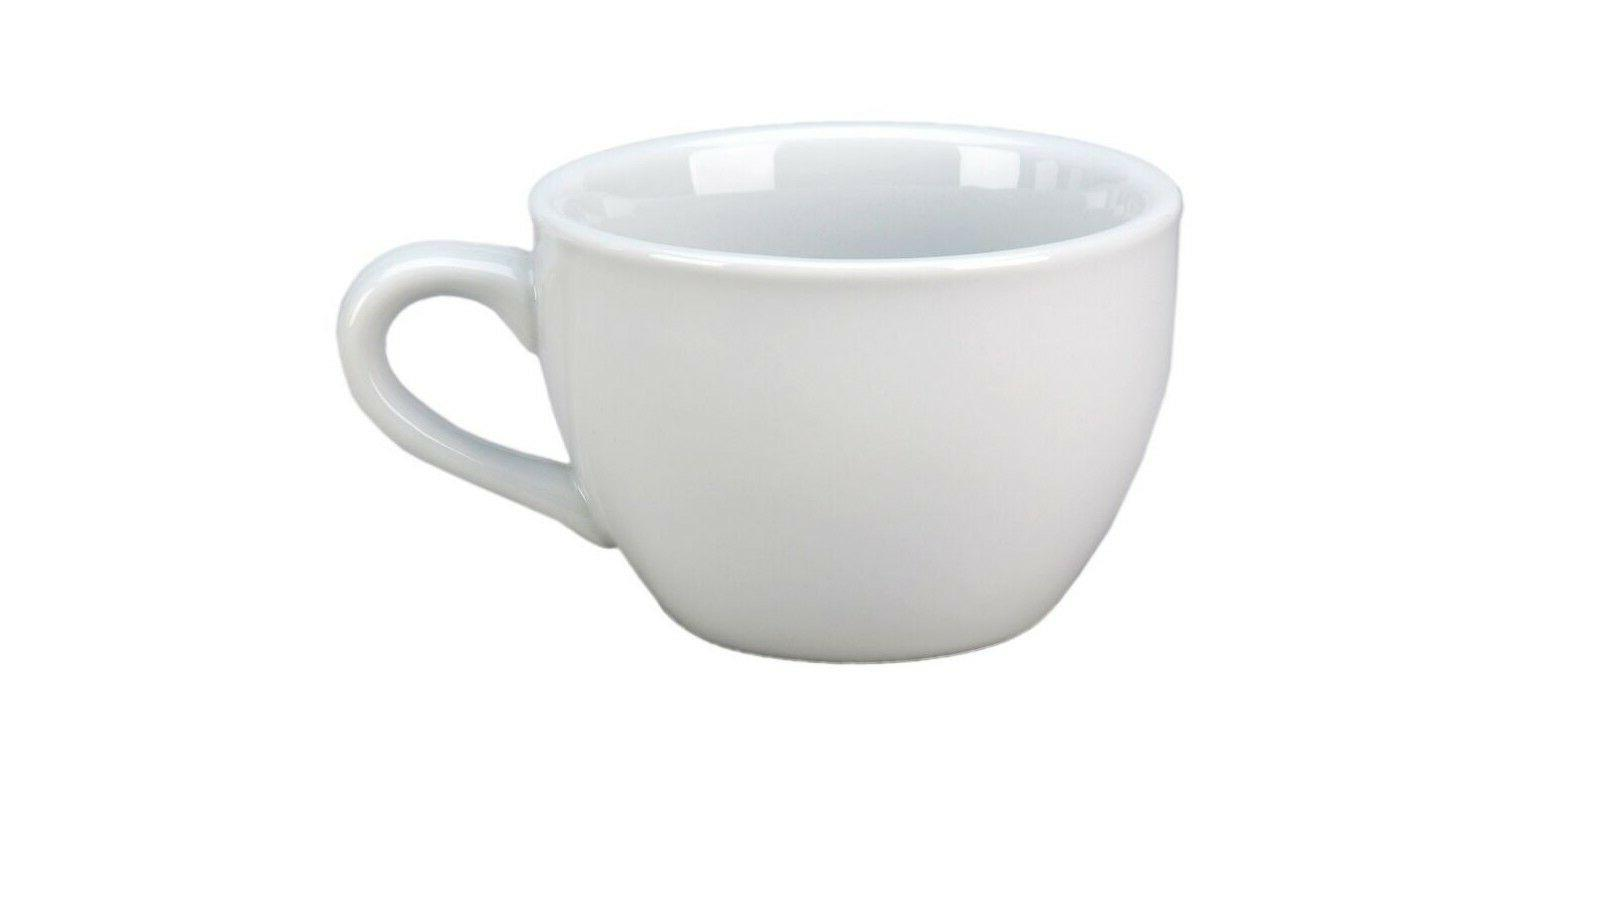 cat 1 8 oz coffee cups 3